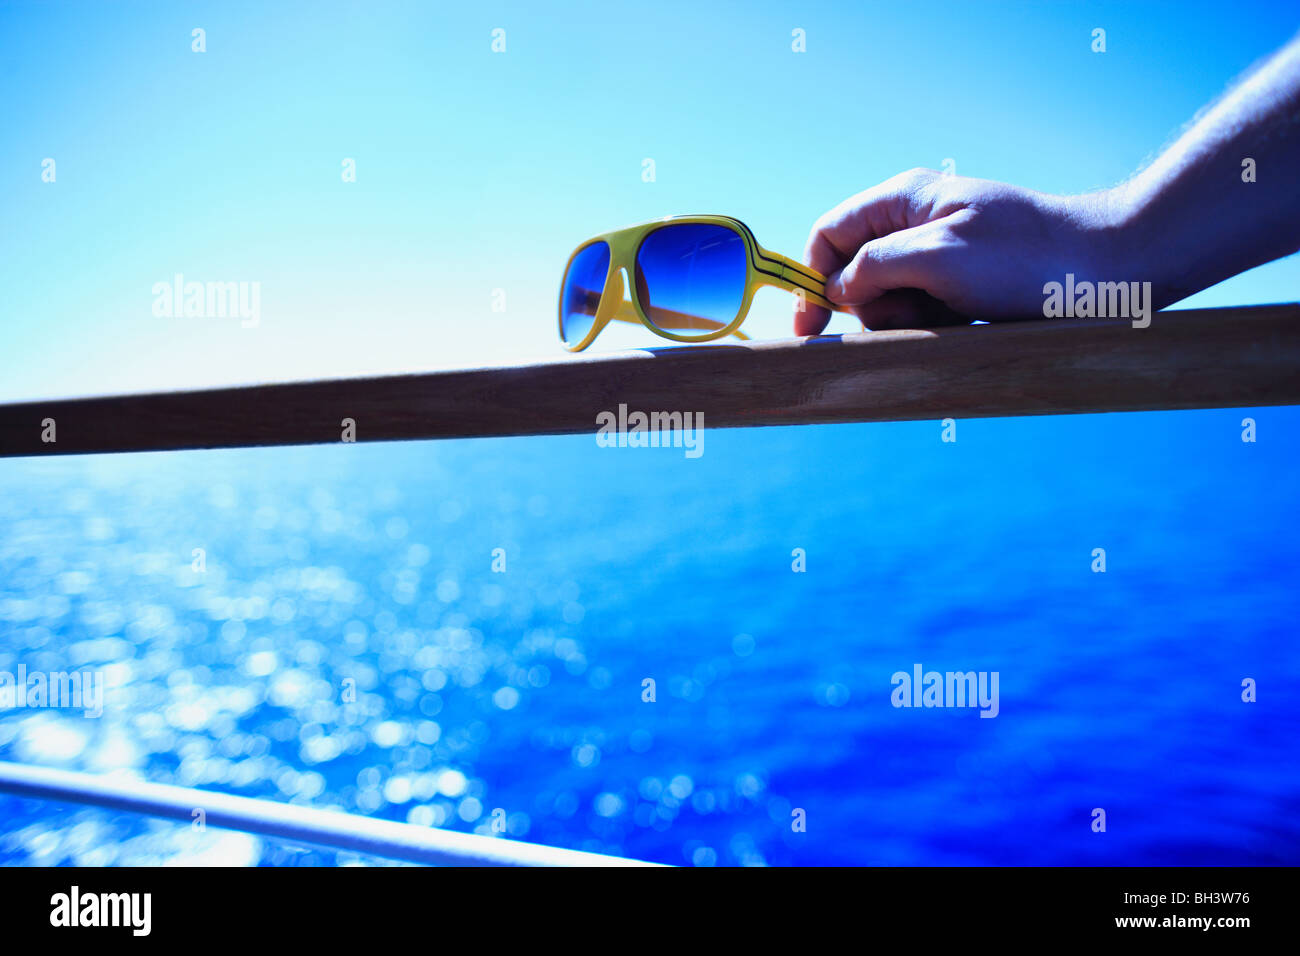 A man's hand holding on to a pair of retro yellow sunglasses resting on a wooden handrail on a cruise ship against - Stock Image